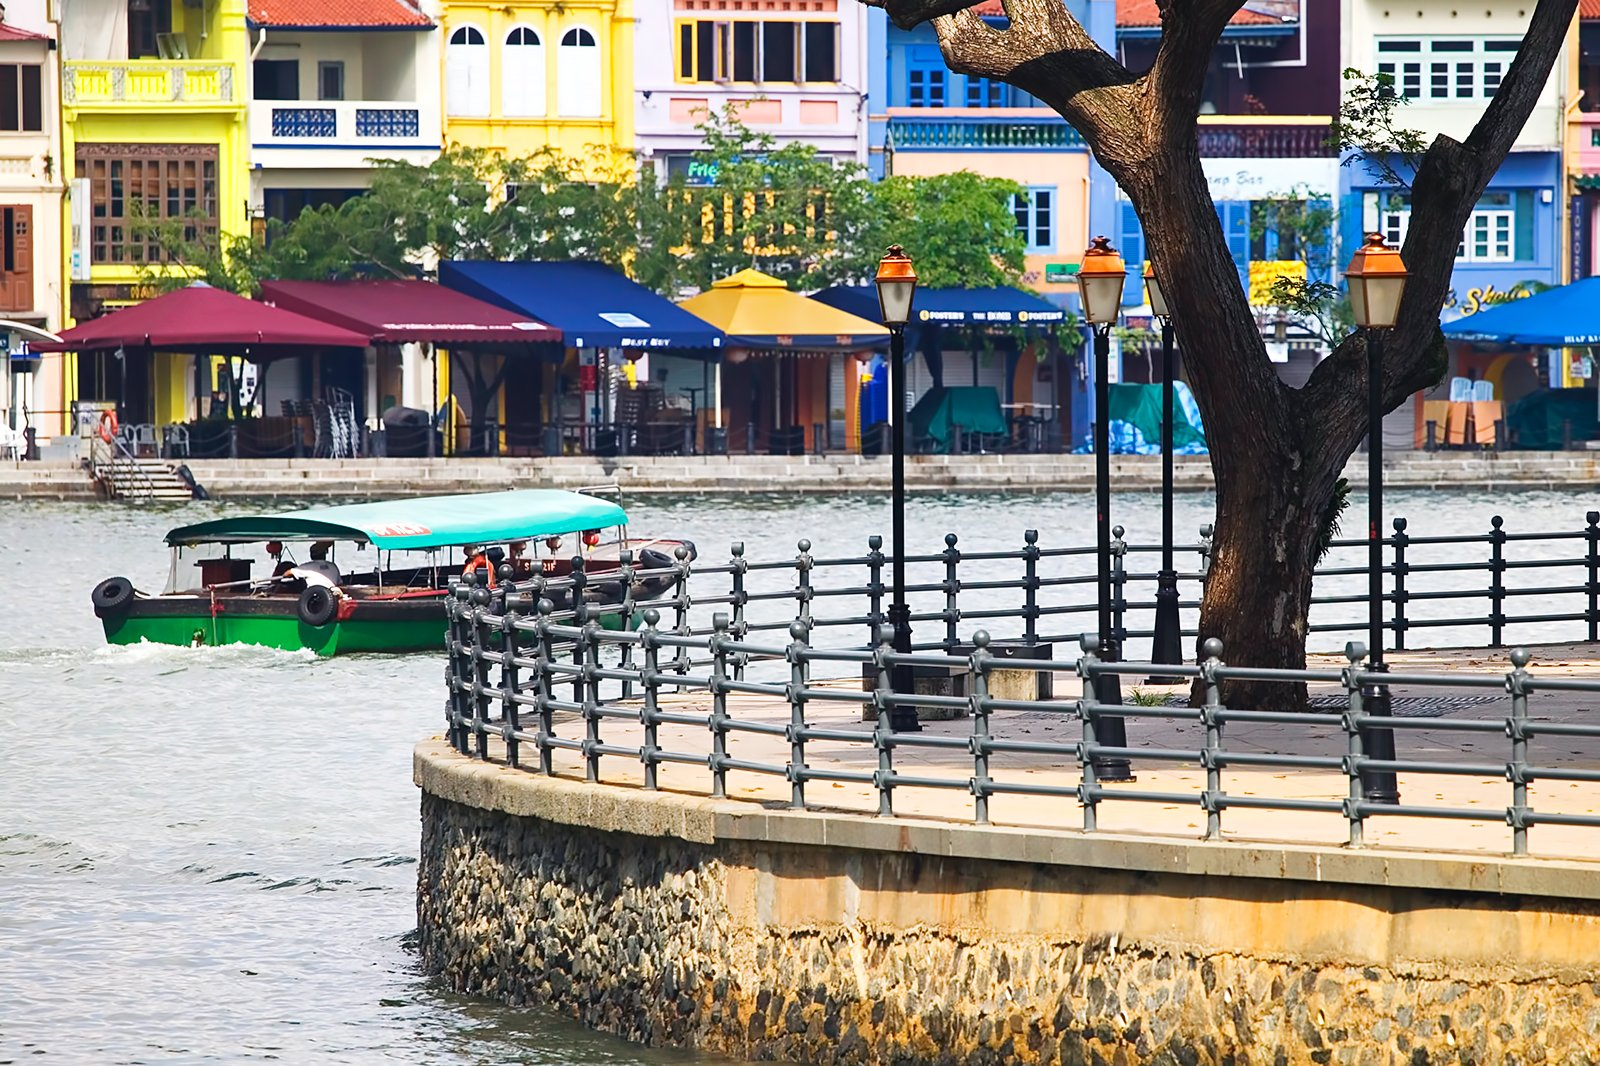 11 Best Things to Do in Clarke Quay - What is Clarke Quay